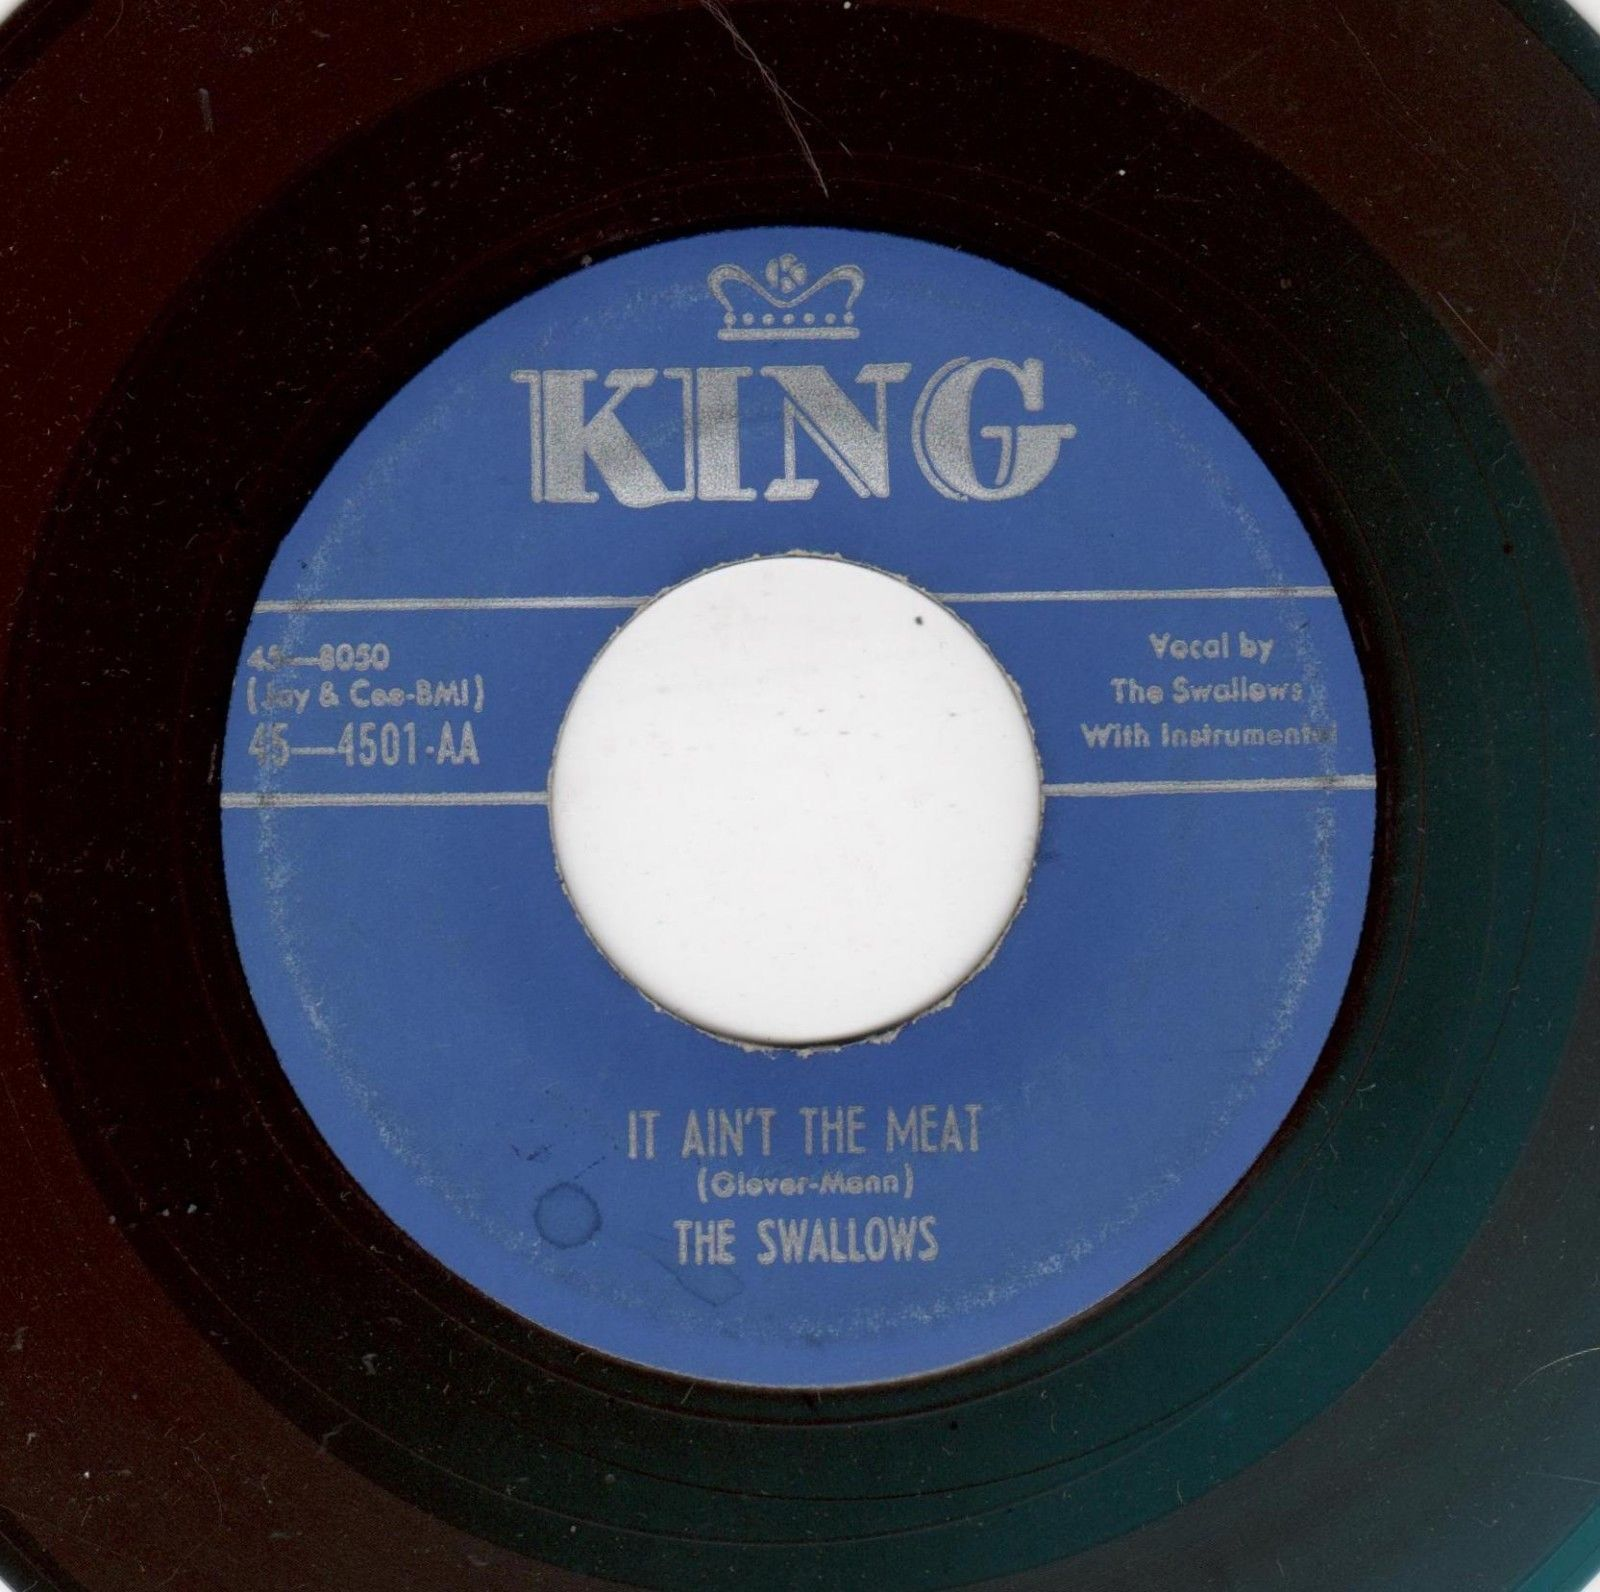 RARE DOOWOP-SWALLOWS-KING 4501AA-IT AIN'T THE MEAT/ETERNALLY (BLUE WAX)